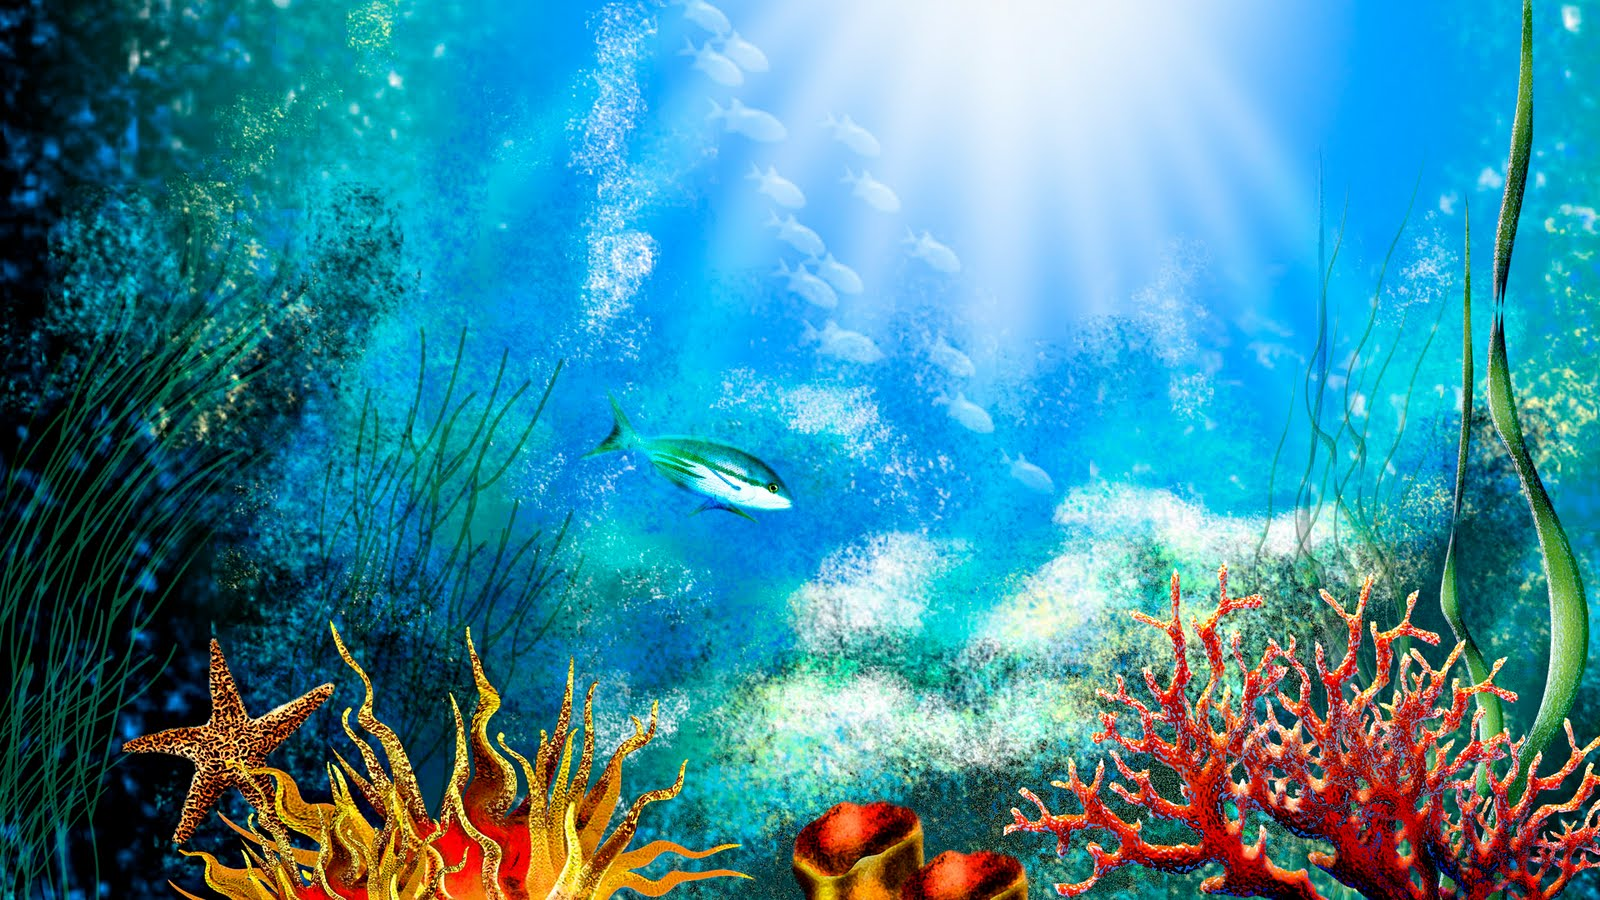 hd wallpapers: Aquarium Wallpaper